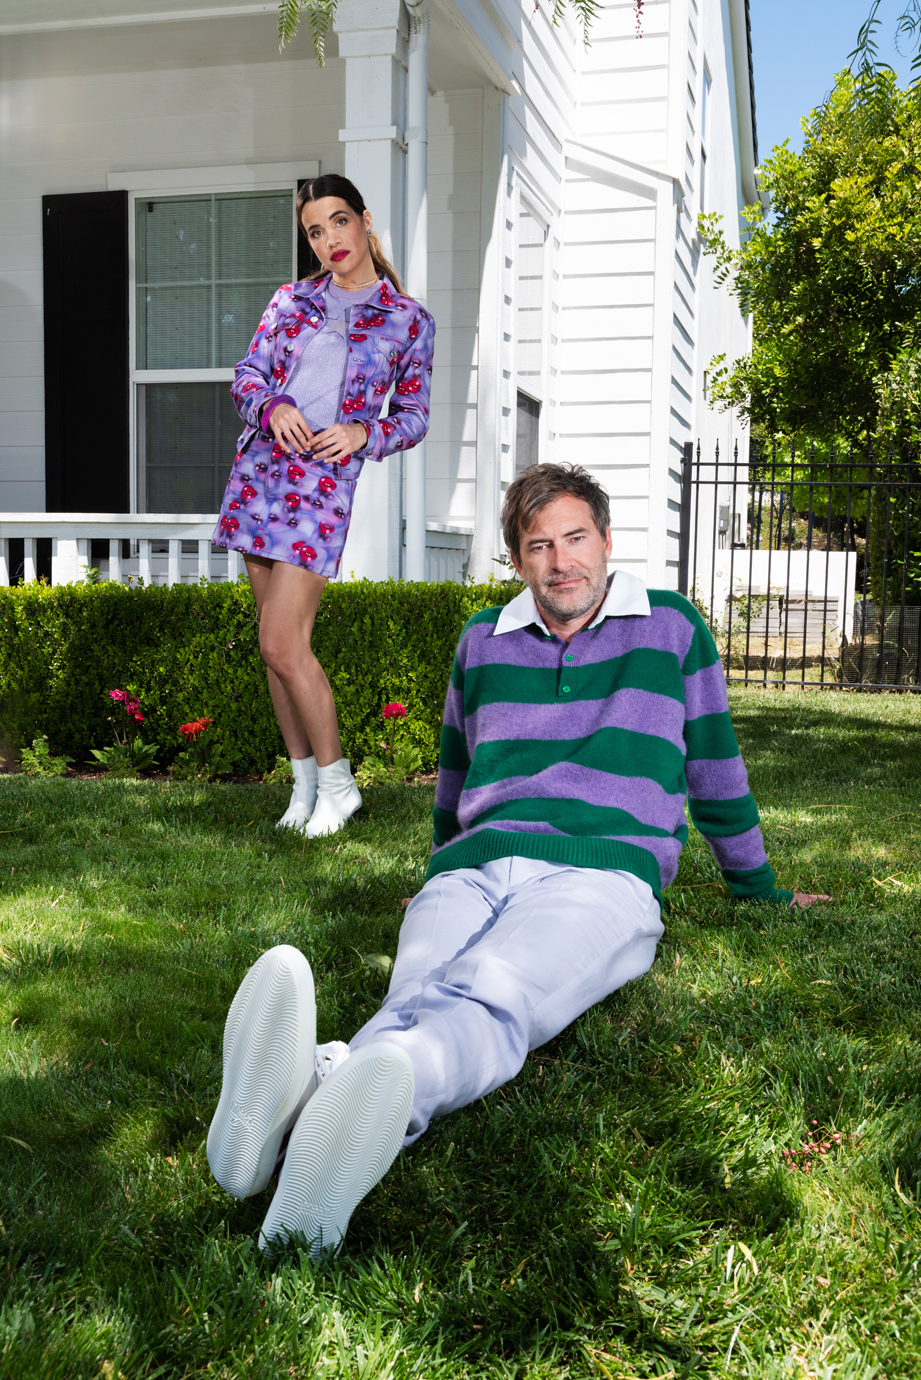 Mark Duplass and Natalie Morales pose on the yard outside of a home.